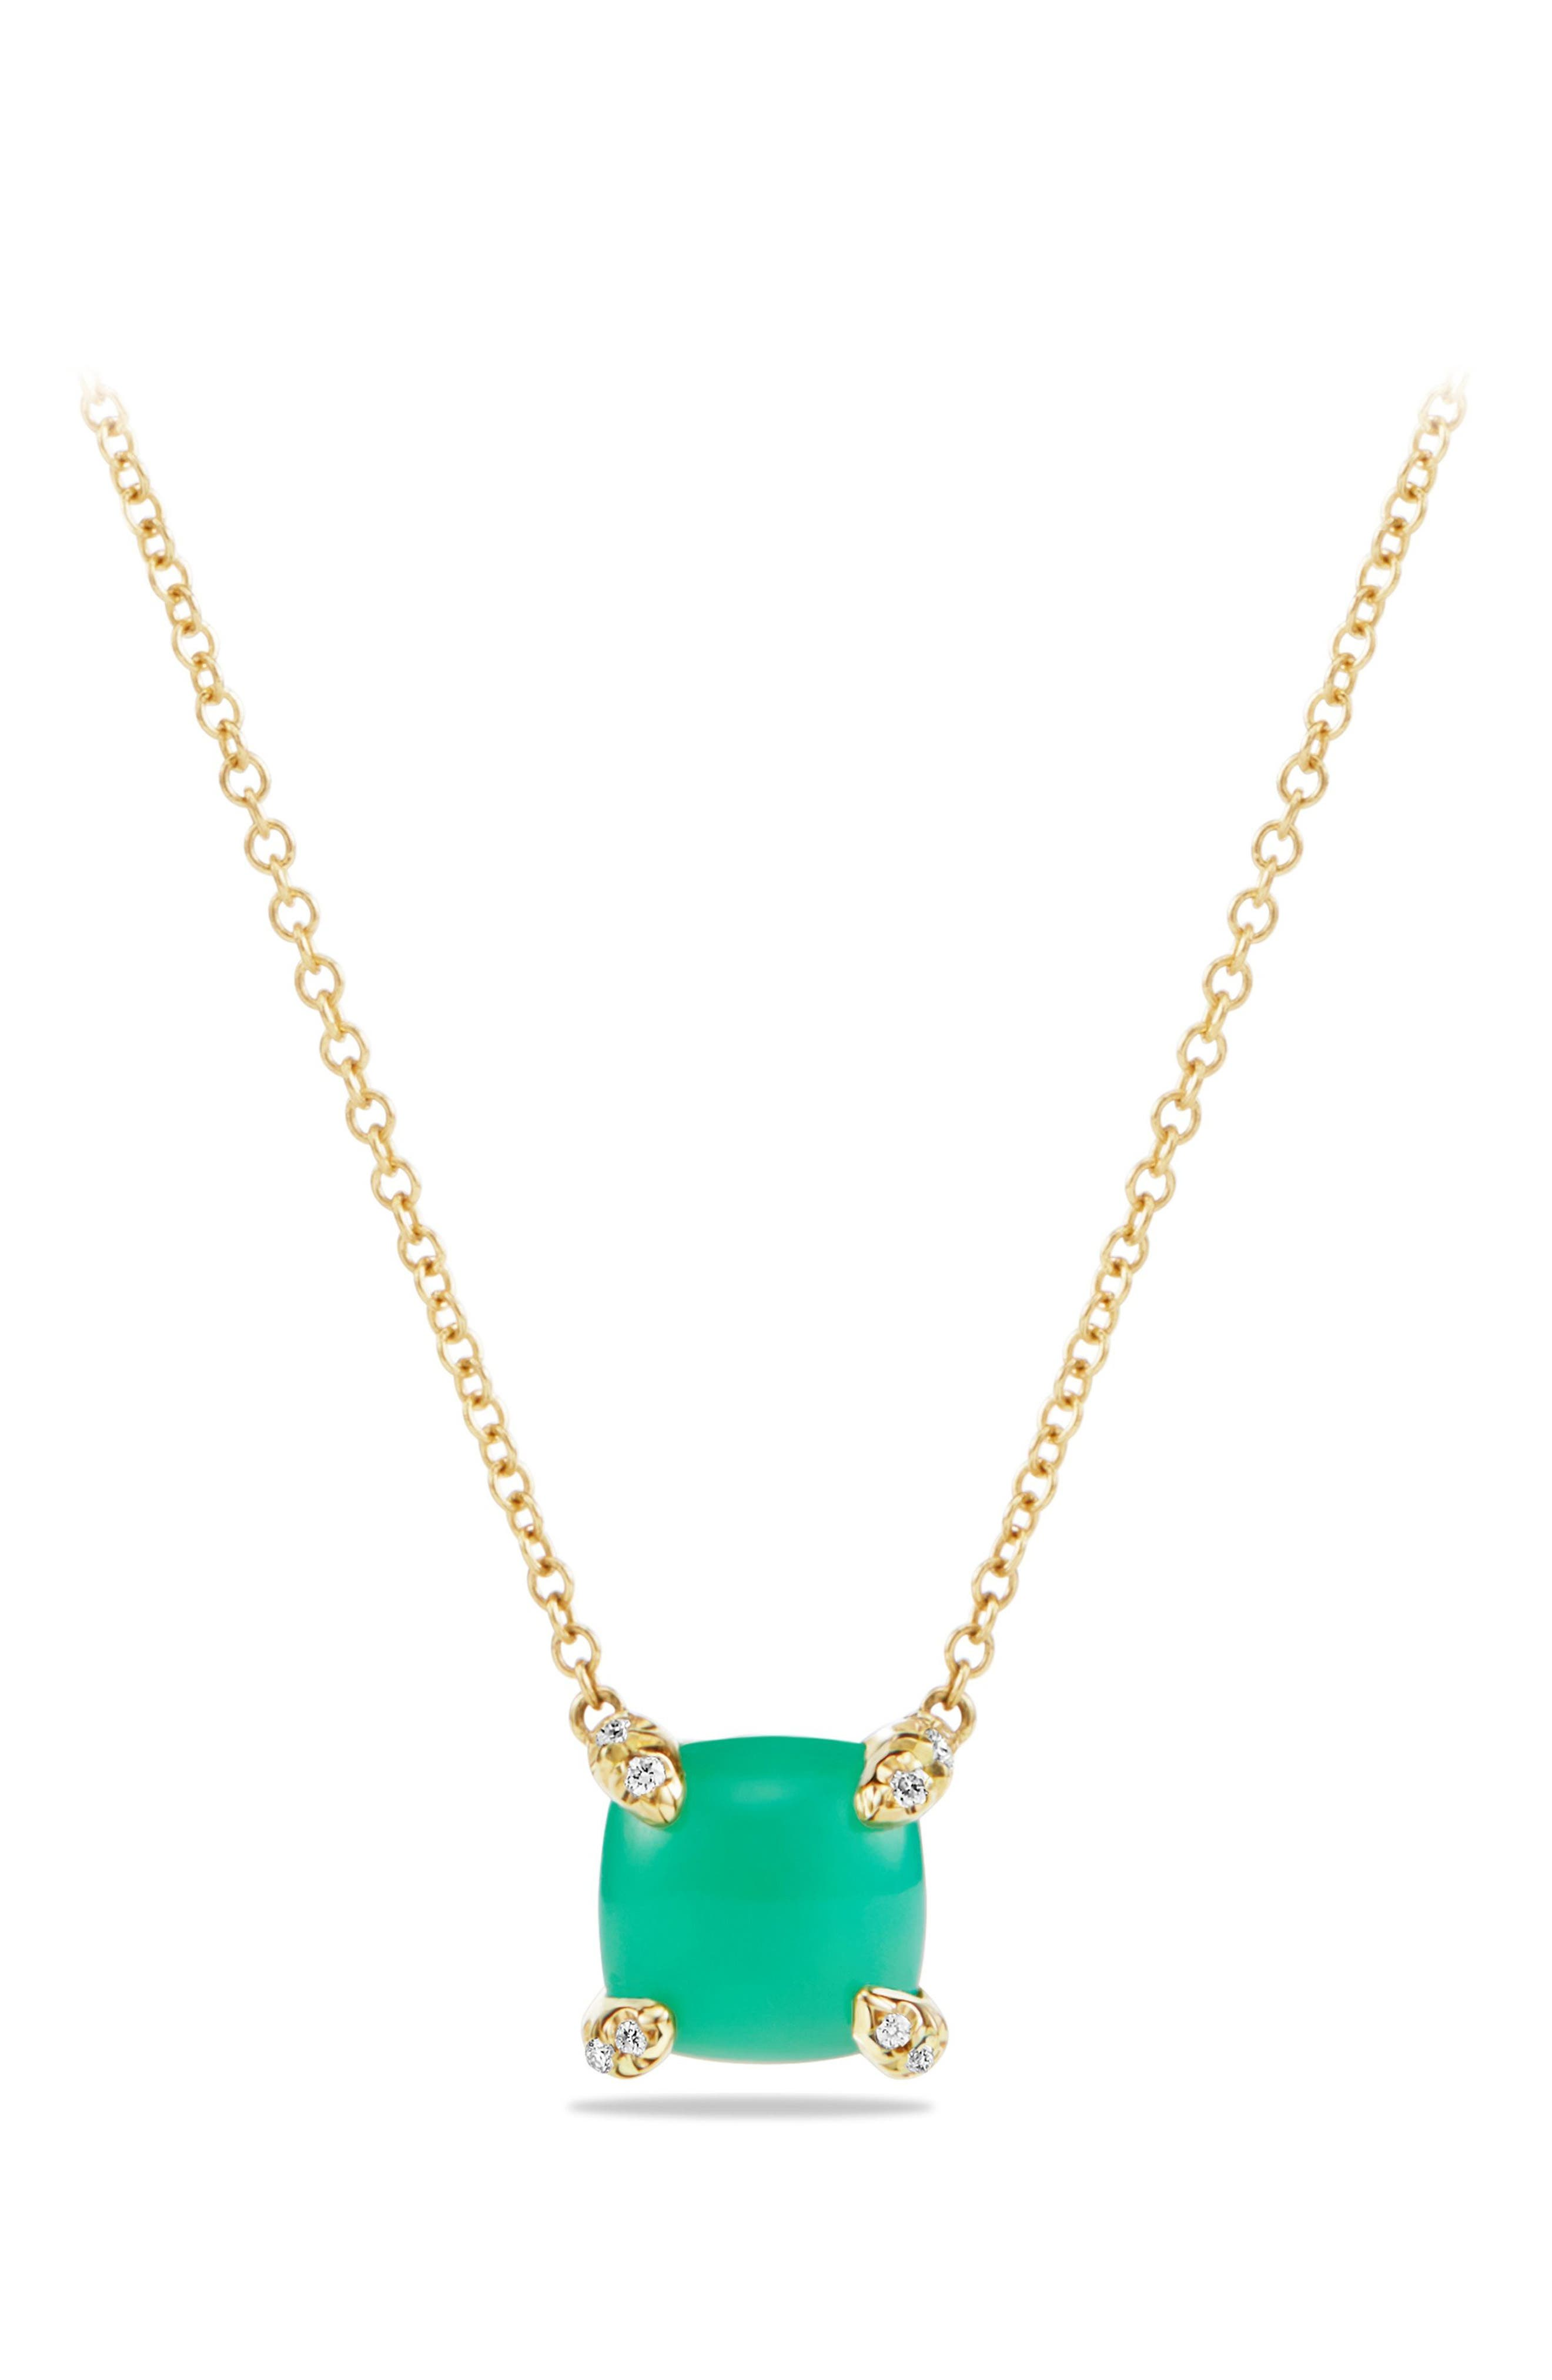 'Châtelaine' Pendant Necklace with Semiprecious Stone and Diamonds in 18K Gold,                         Main,                         color, CHRYSOPRASE